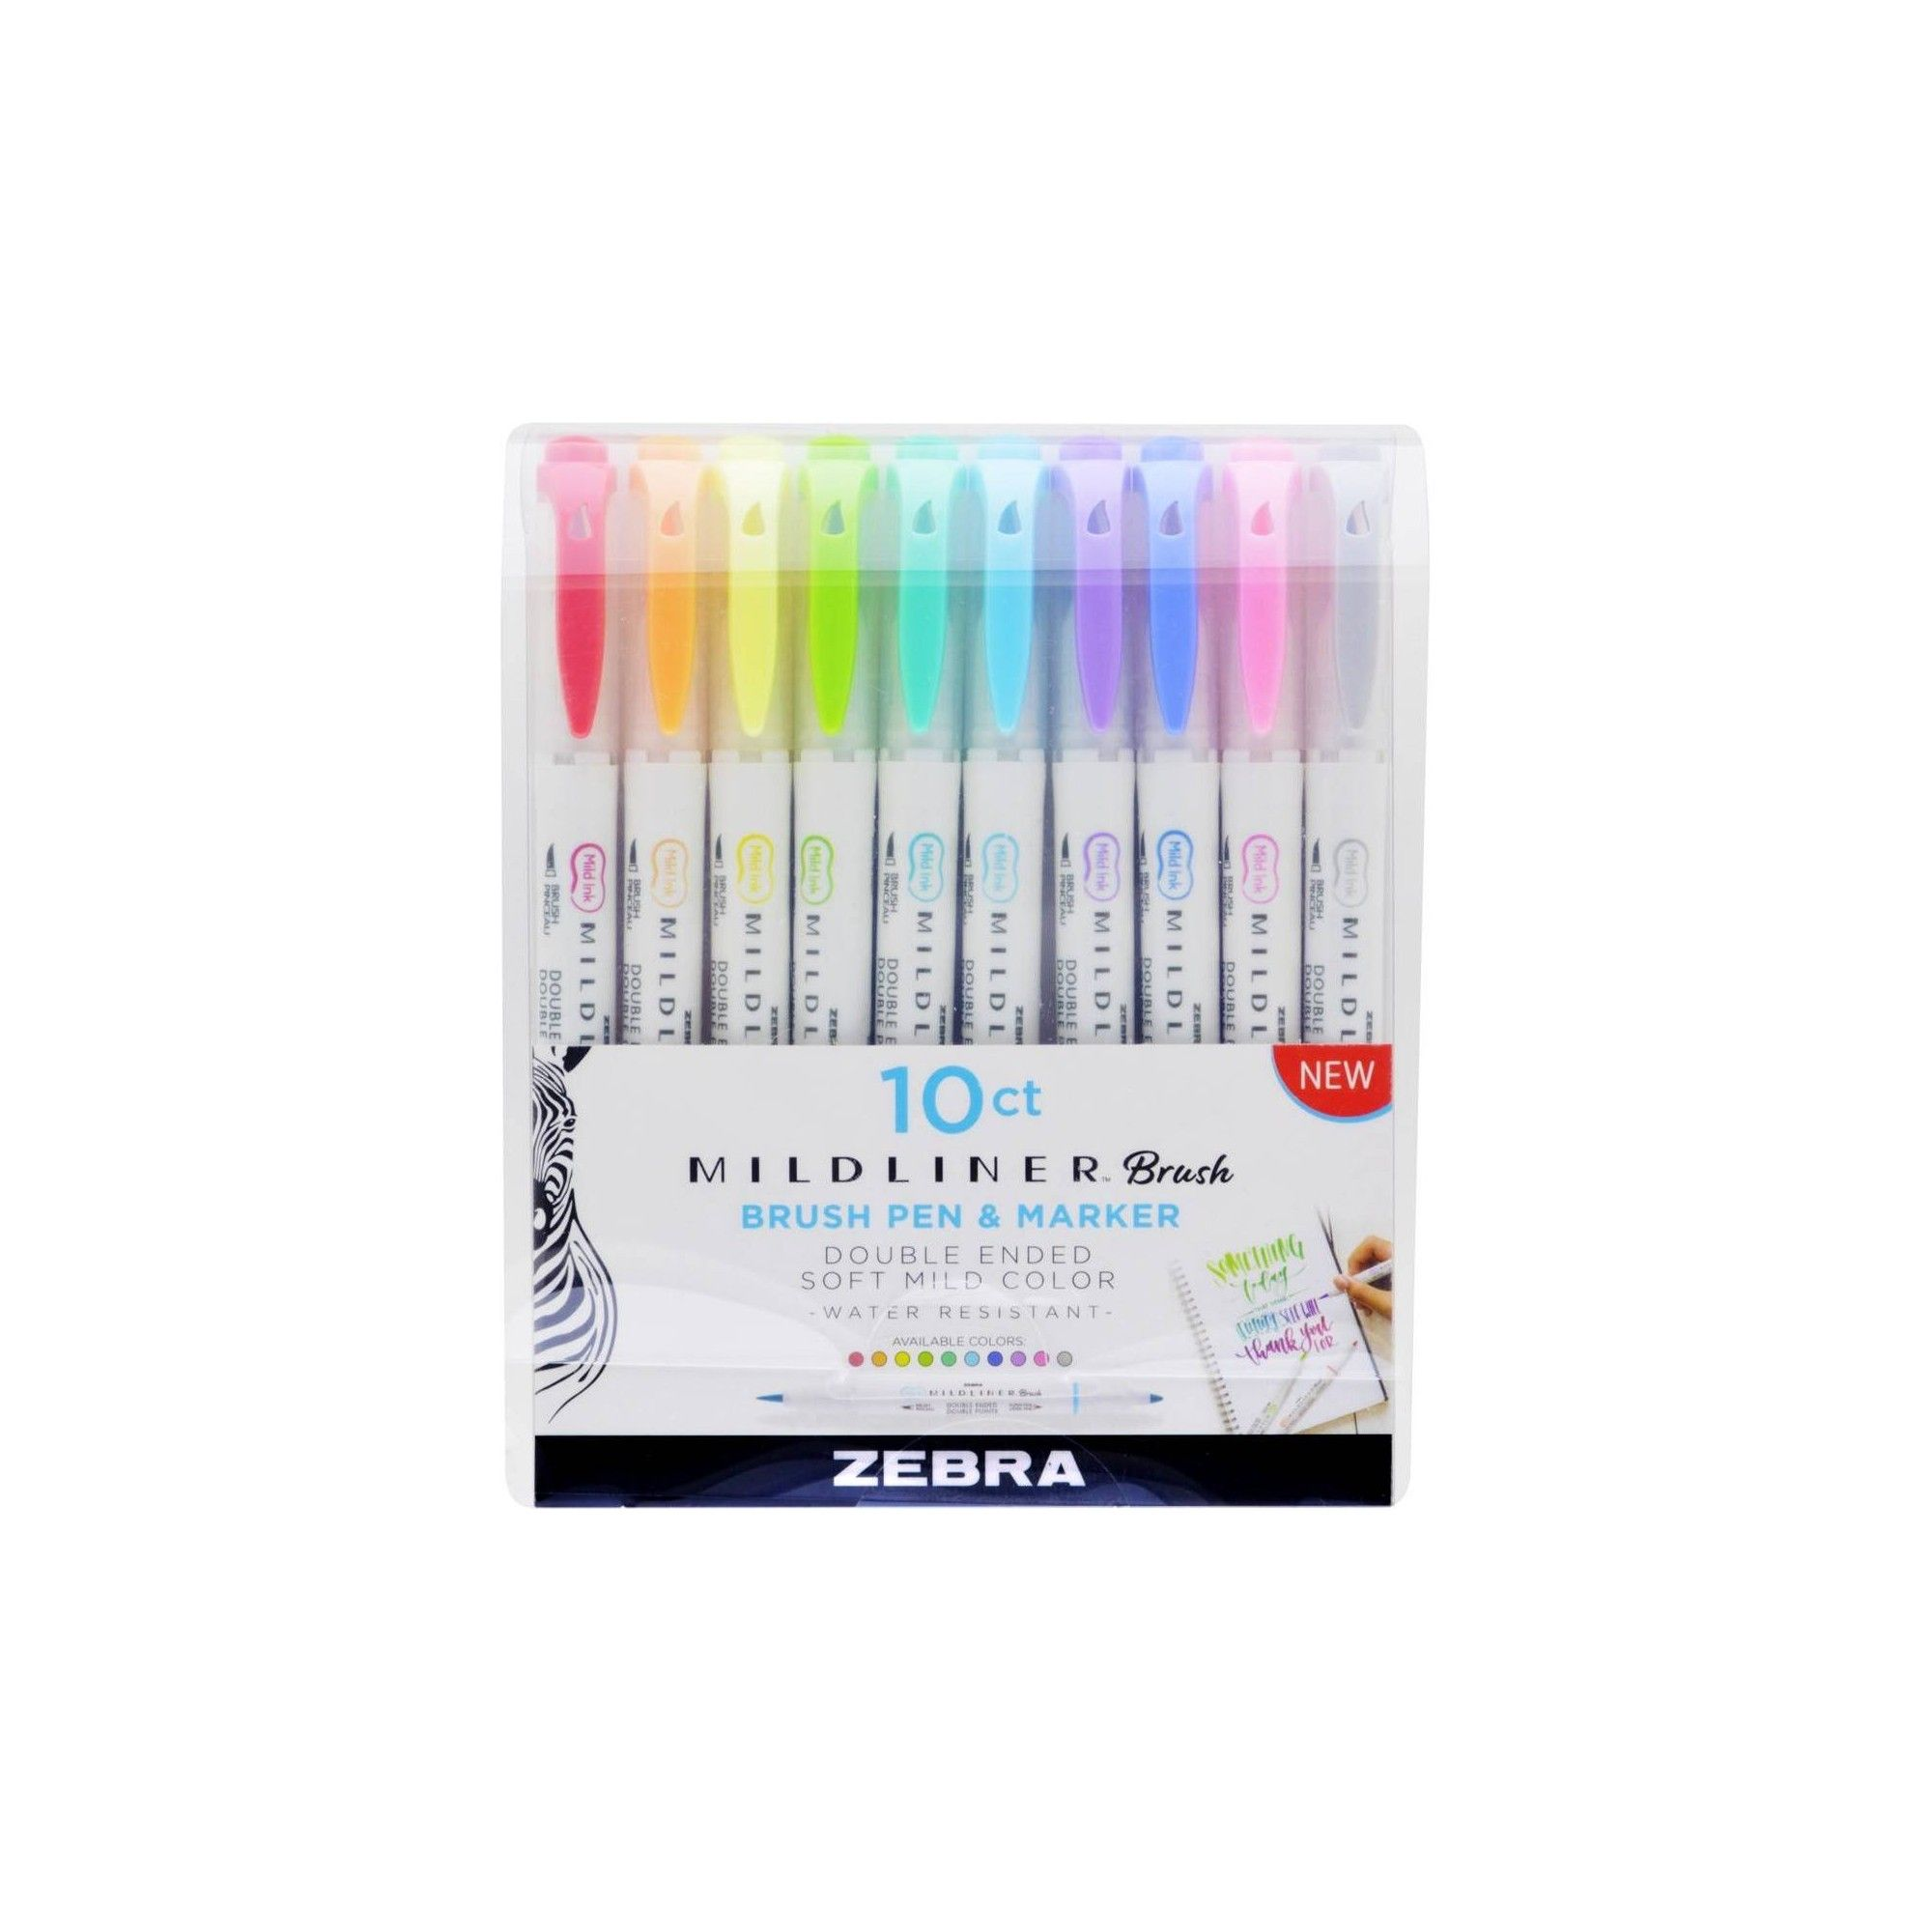 10ct Mildliner Double Ended Brush Pen Zebra Brush Pen